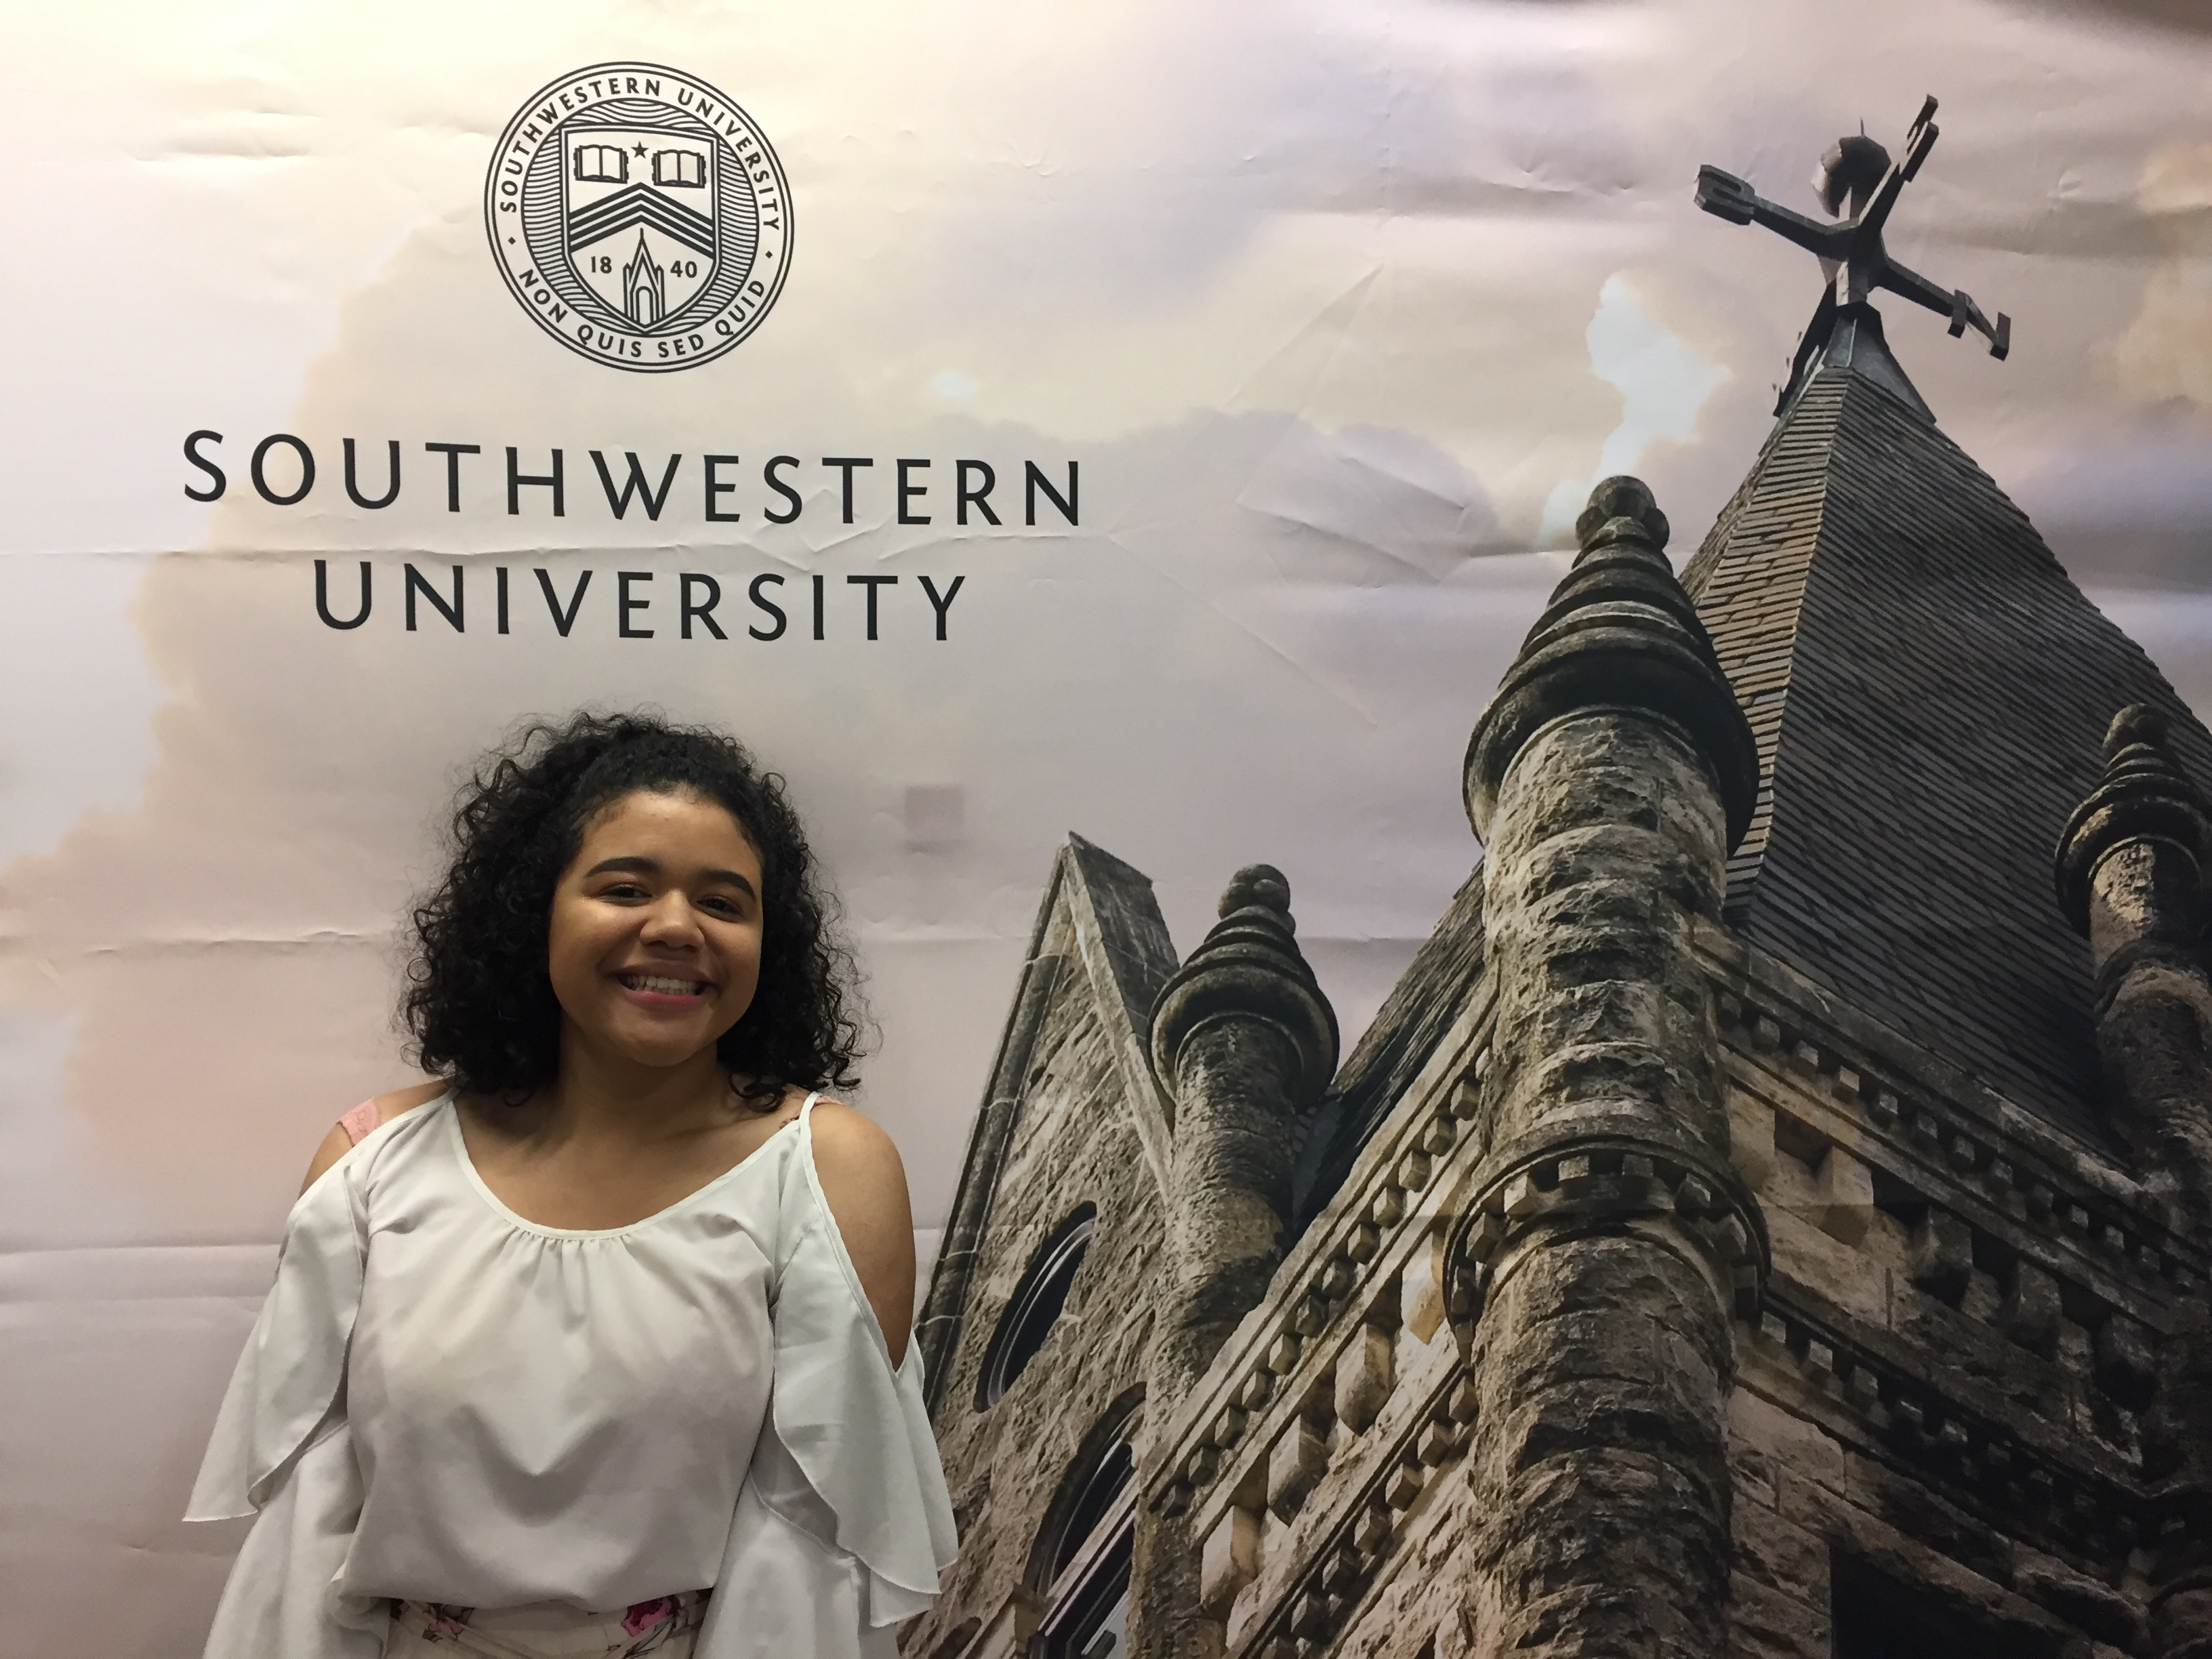 Alyssa Cerda (12) photographed at Southwestern's Admitted Students Day. Photo by Lori Cerda